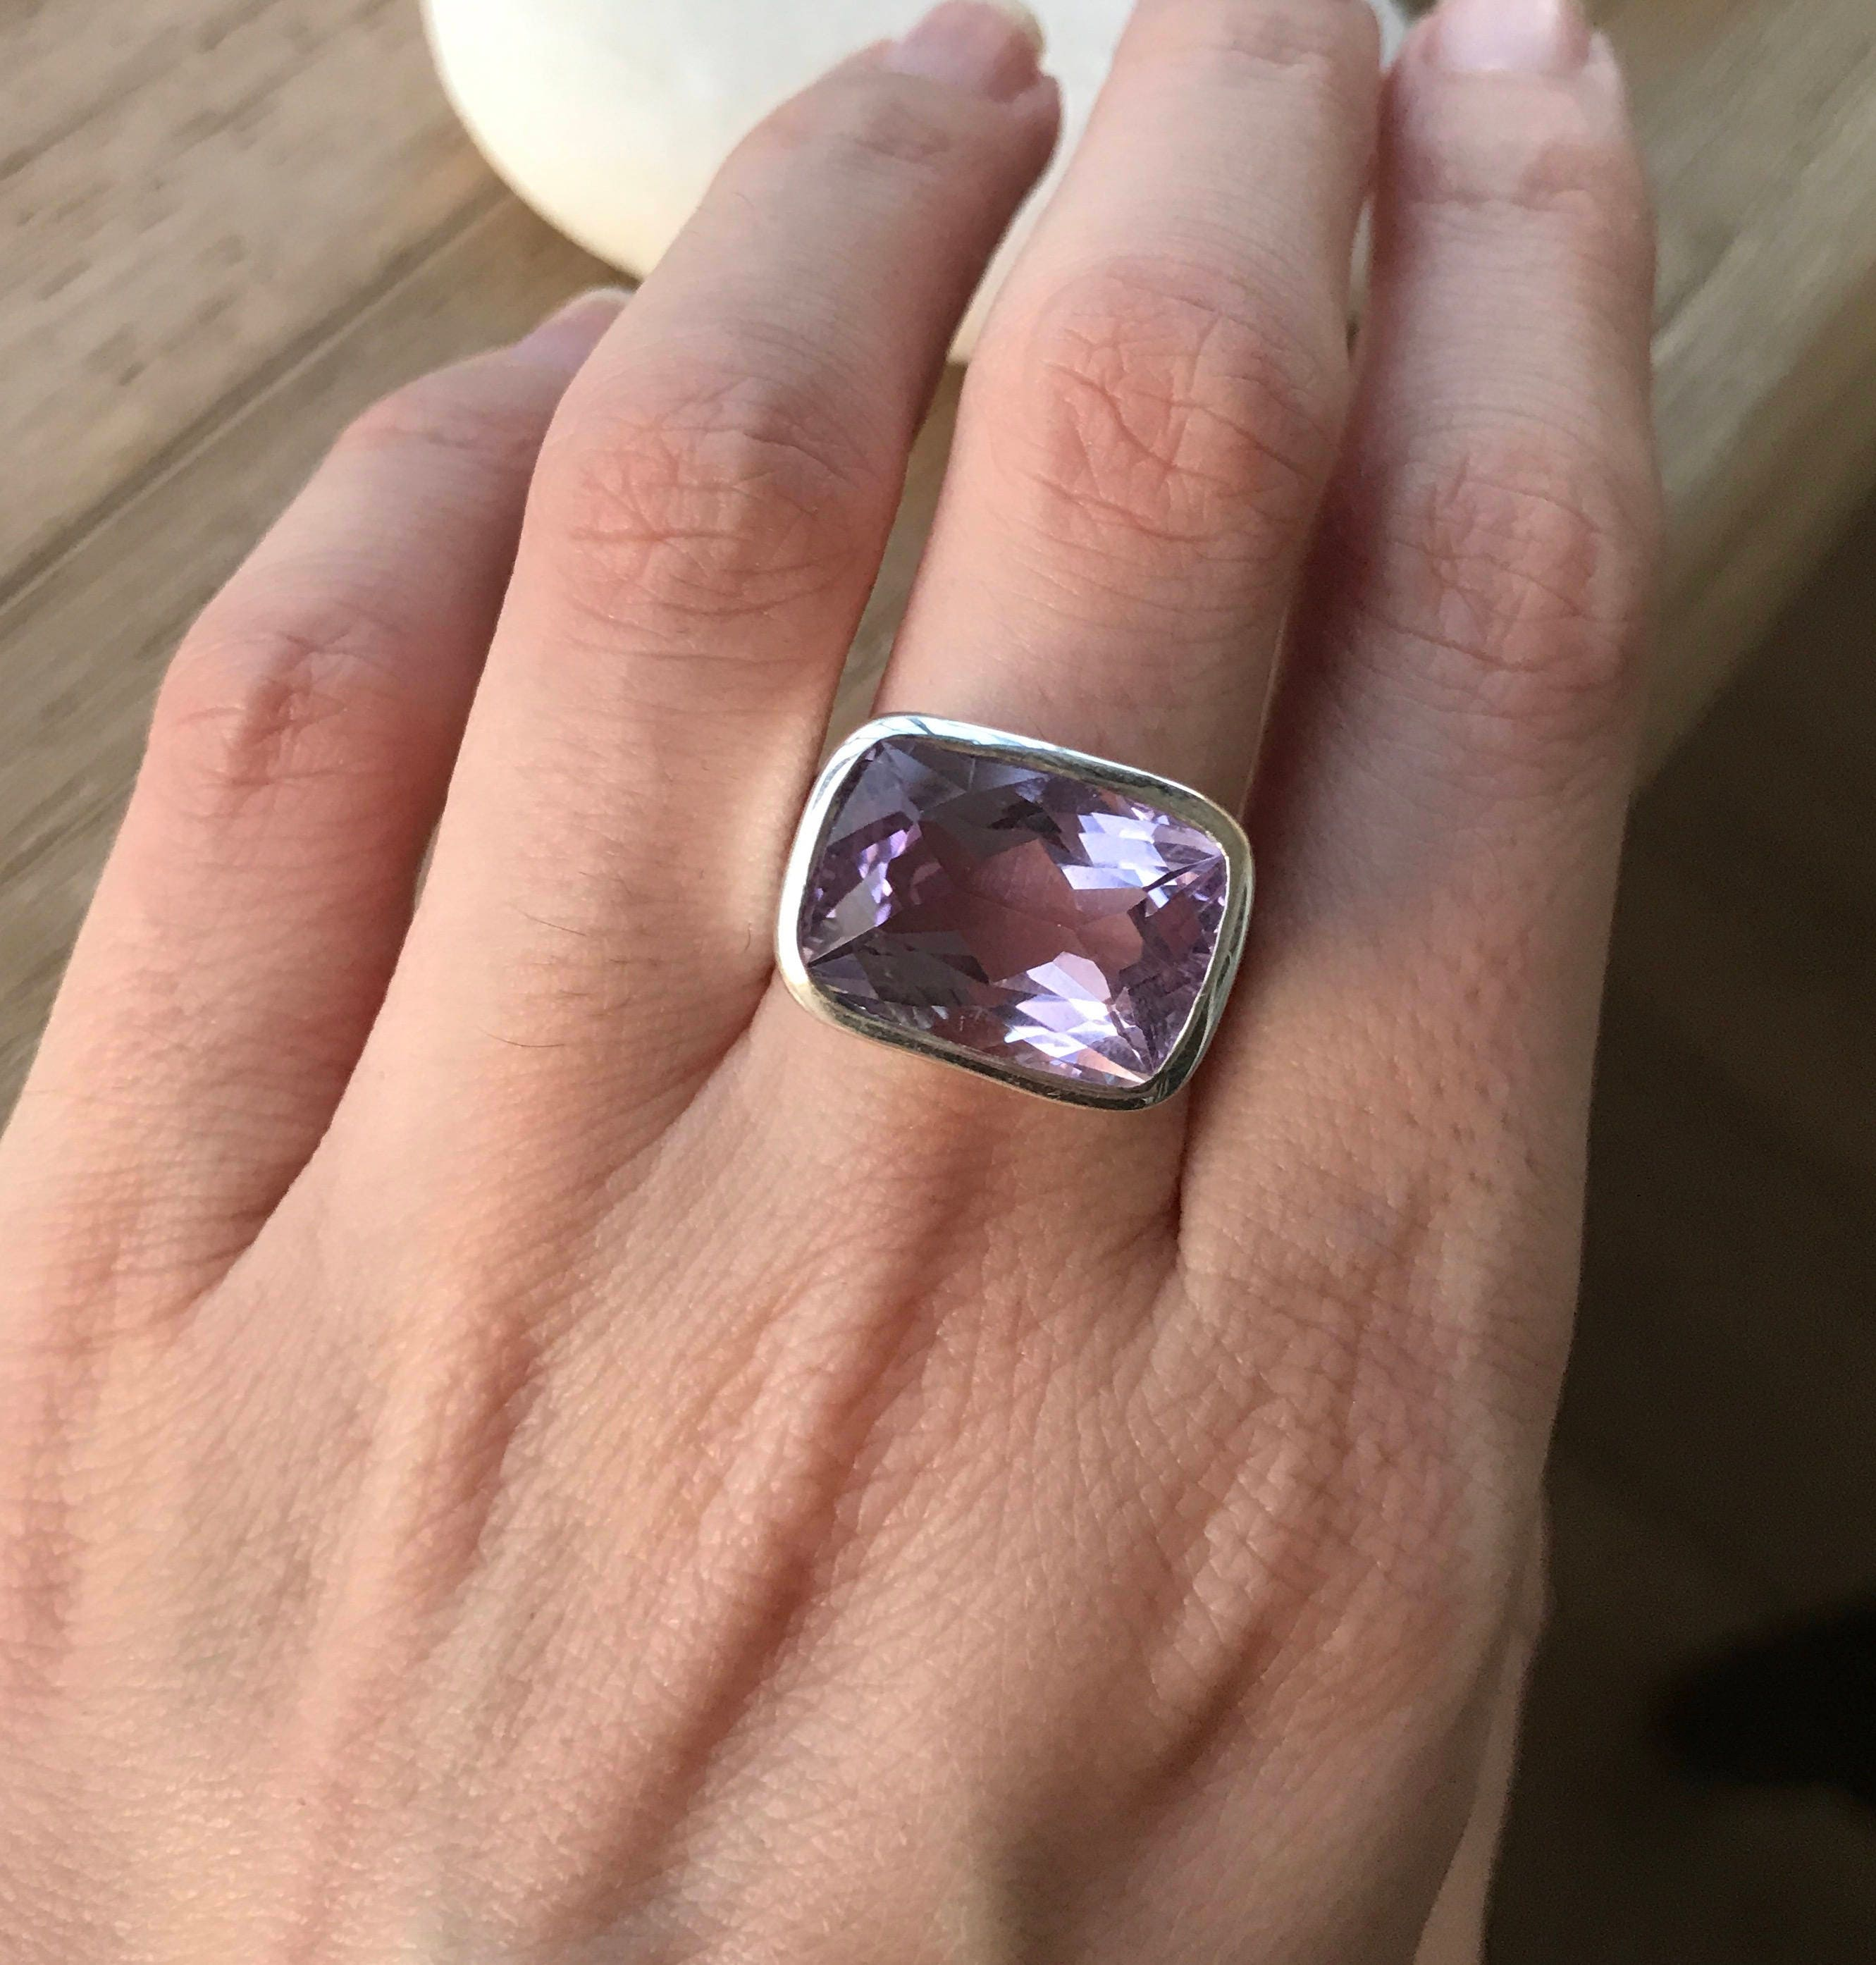 valerie birthstone february ring engagement mother products s amethist kiss rings diamond amethyst